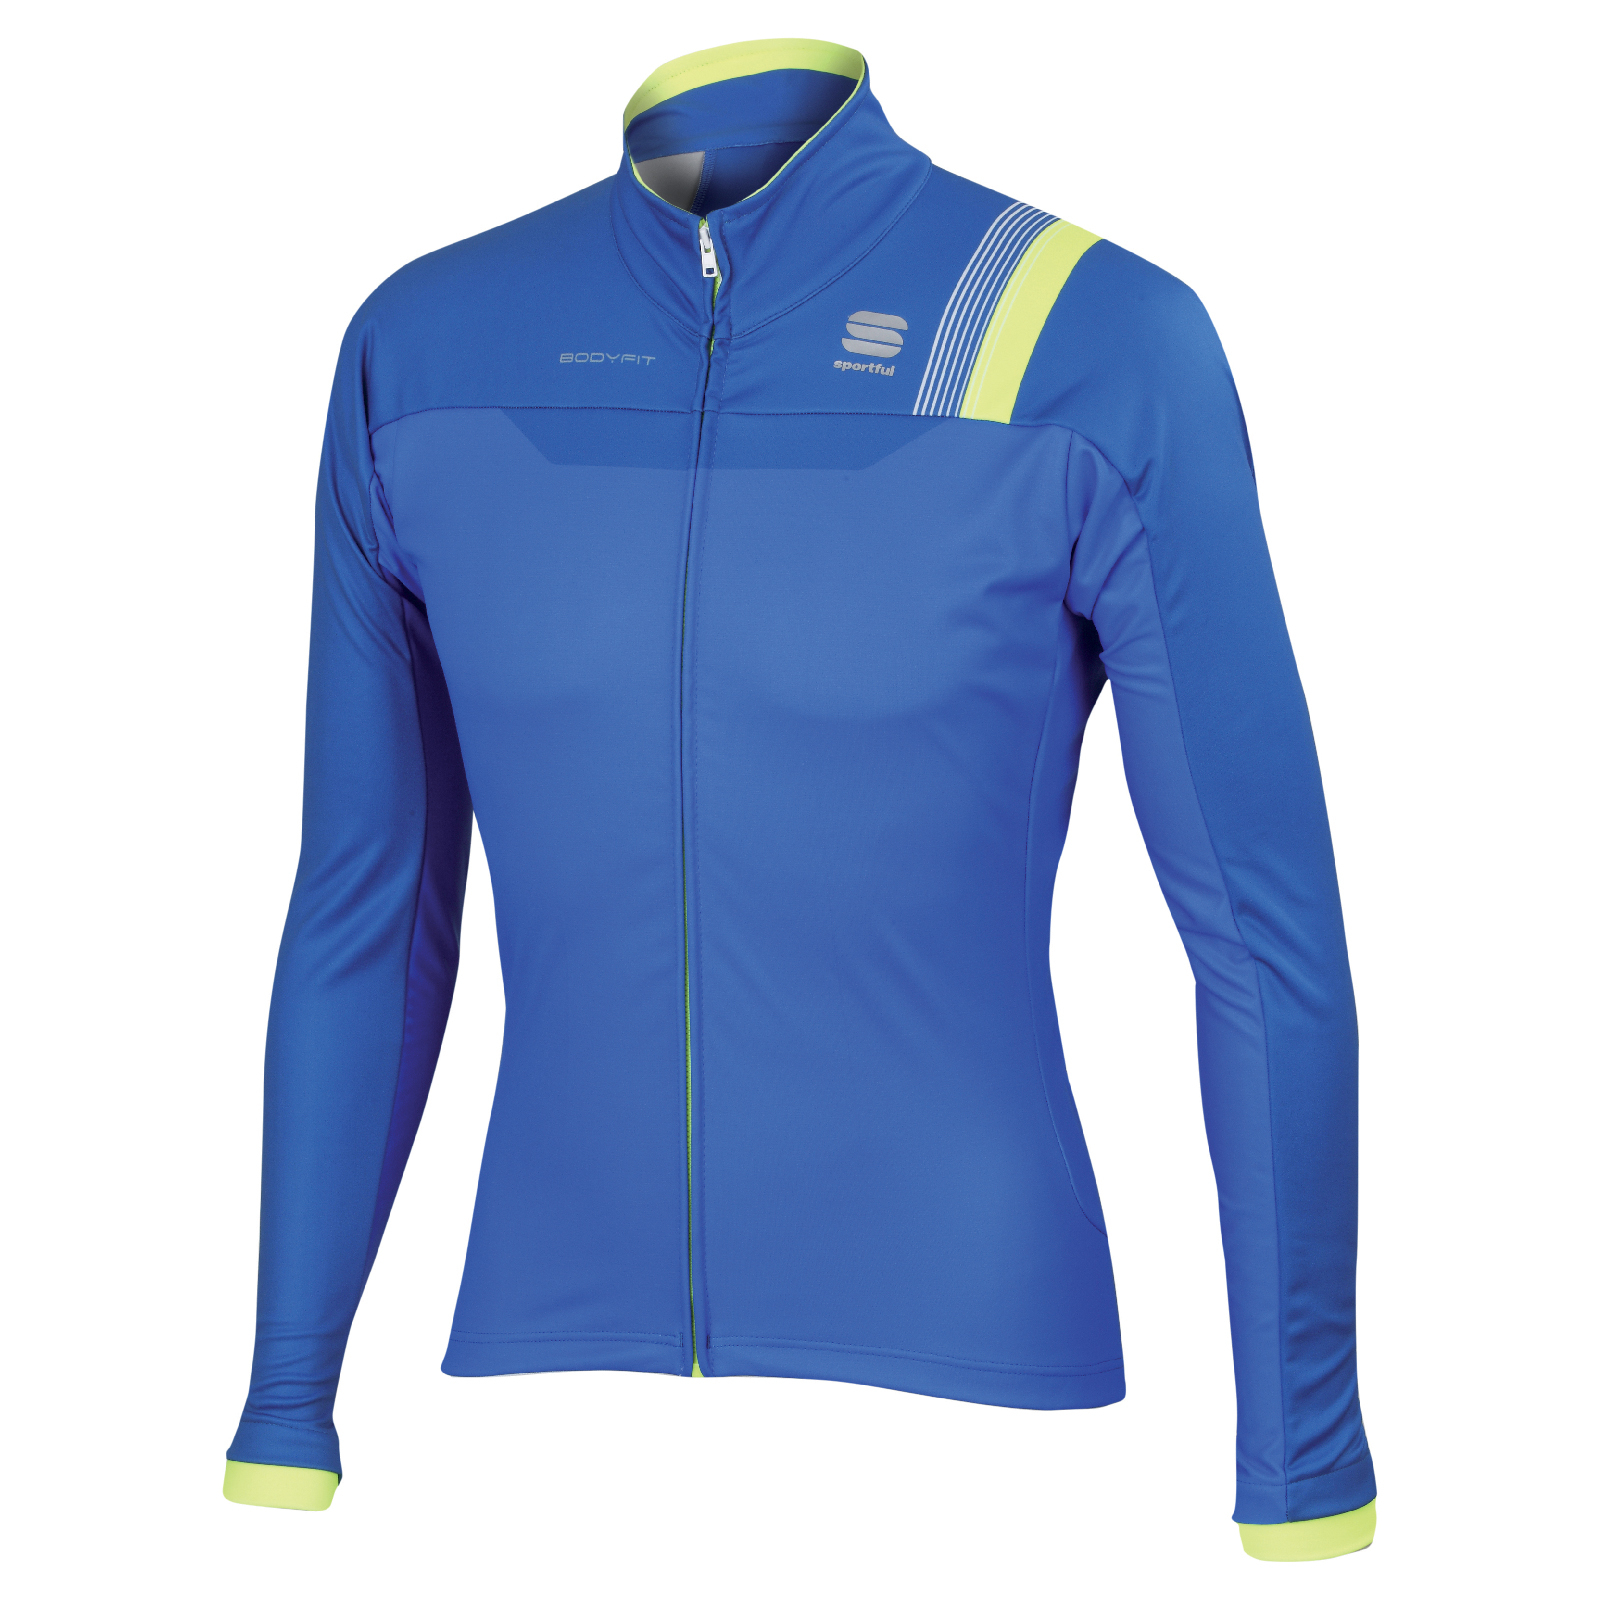 Sportful BodyFit Pro Windstopper Jacket - Blue